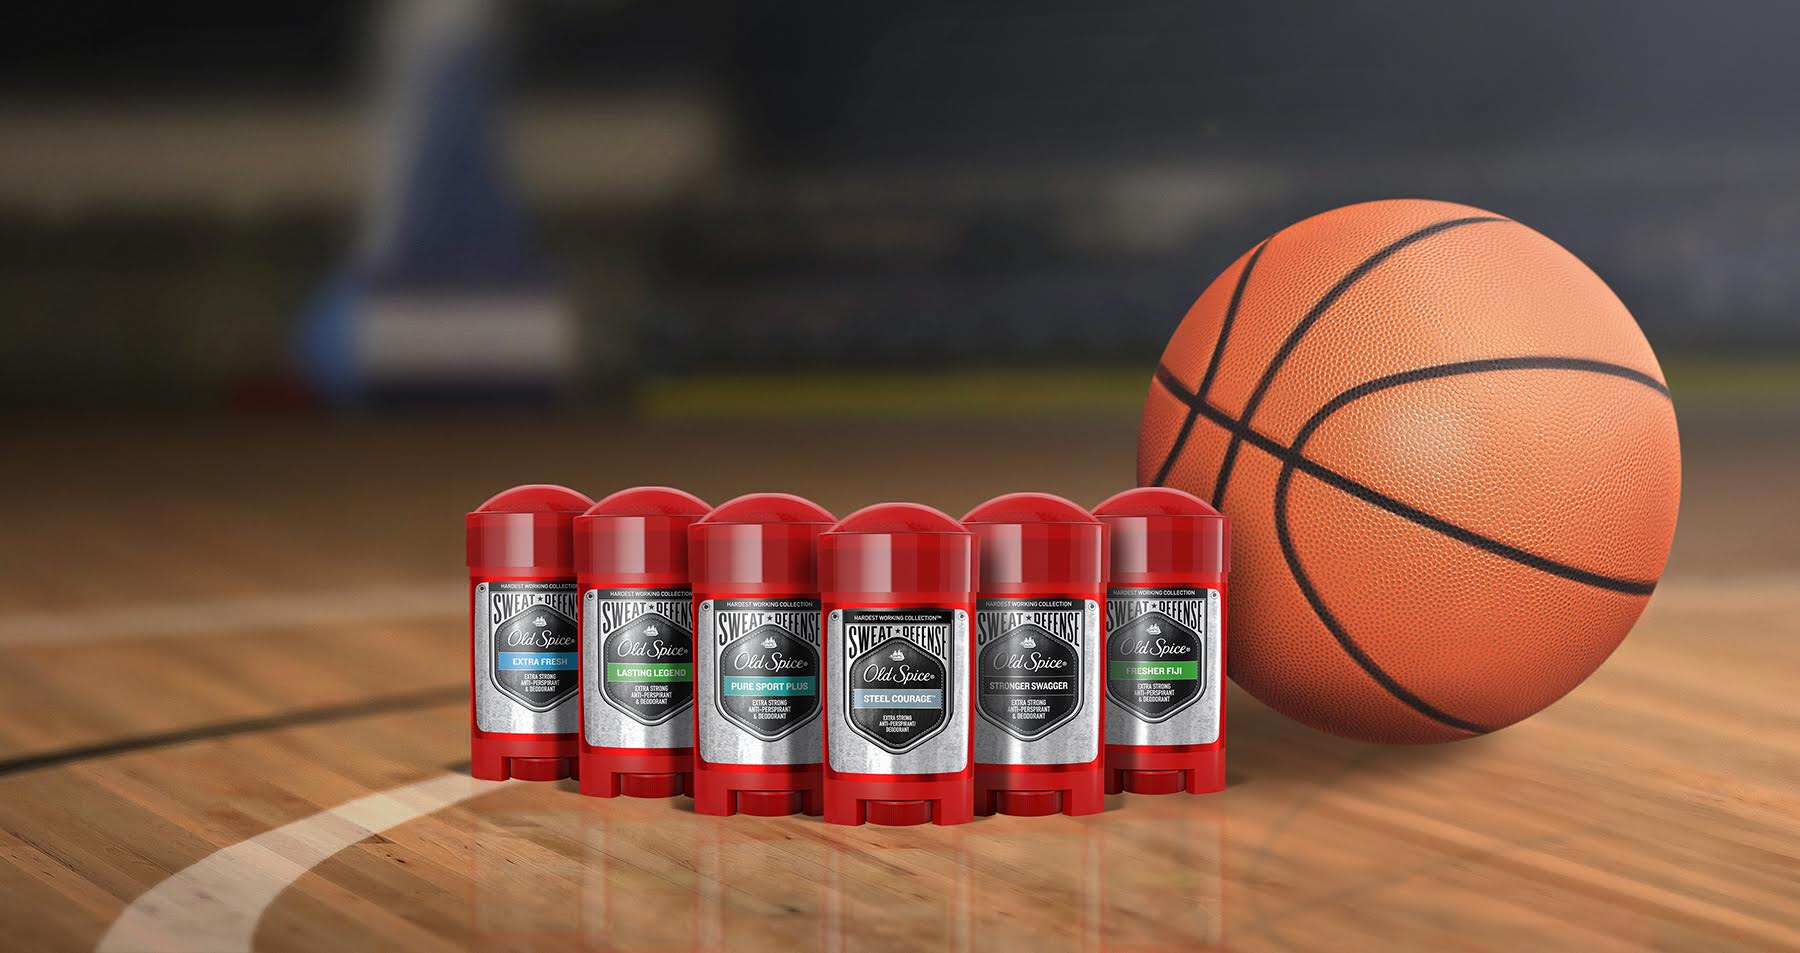 Ode to Spring Sports: Inspired By Old Spice Sweat Defense/Hardest Working Collection